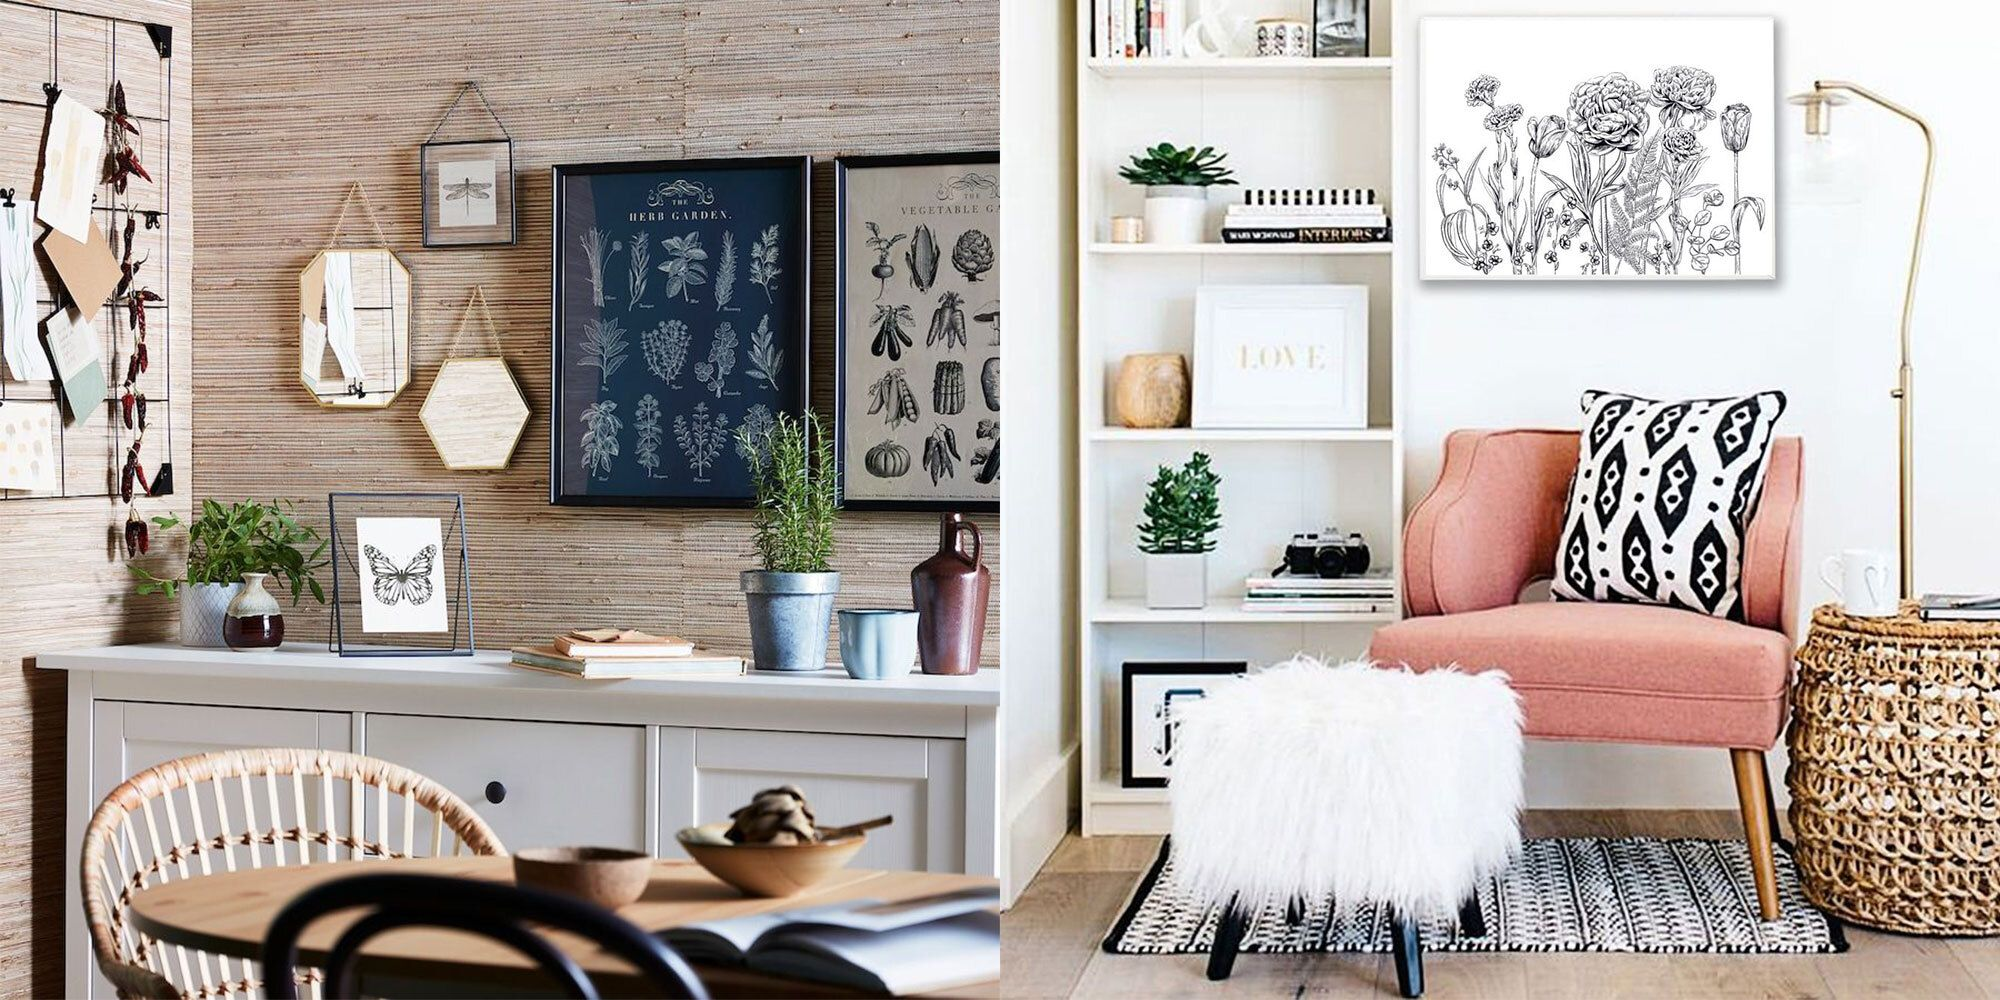 11 Cheap Home Decor Websites So You Can Get Your HGTV On Without Going Broke